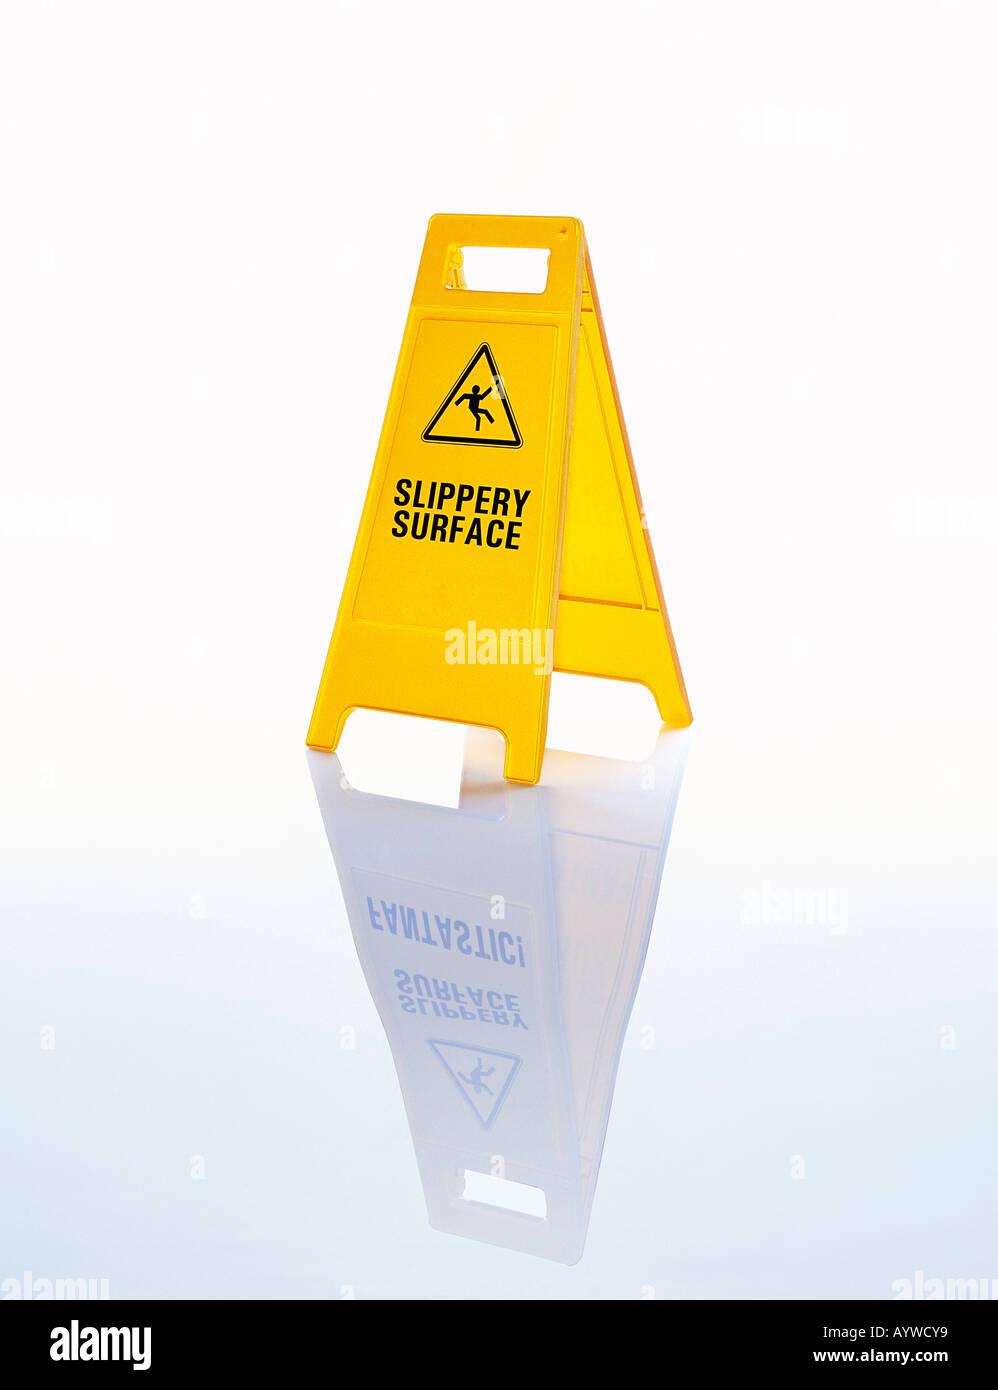 A bright yellow warning floor sign saying 'Slippery surface' on a wet / icy background - Stock Image